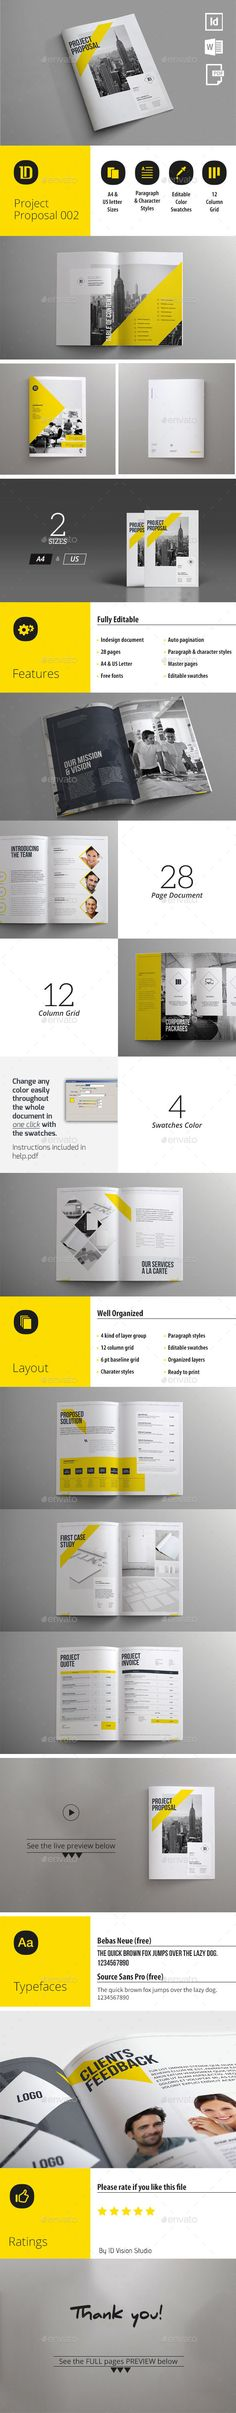 Project Proposal Template 003 - Proposals & Invoices Stationery